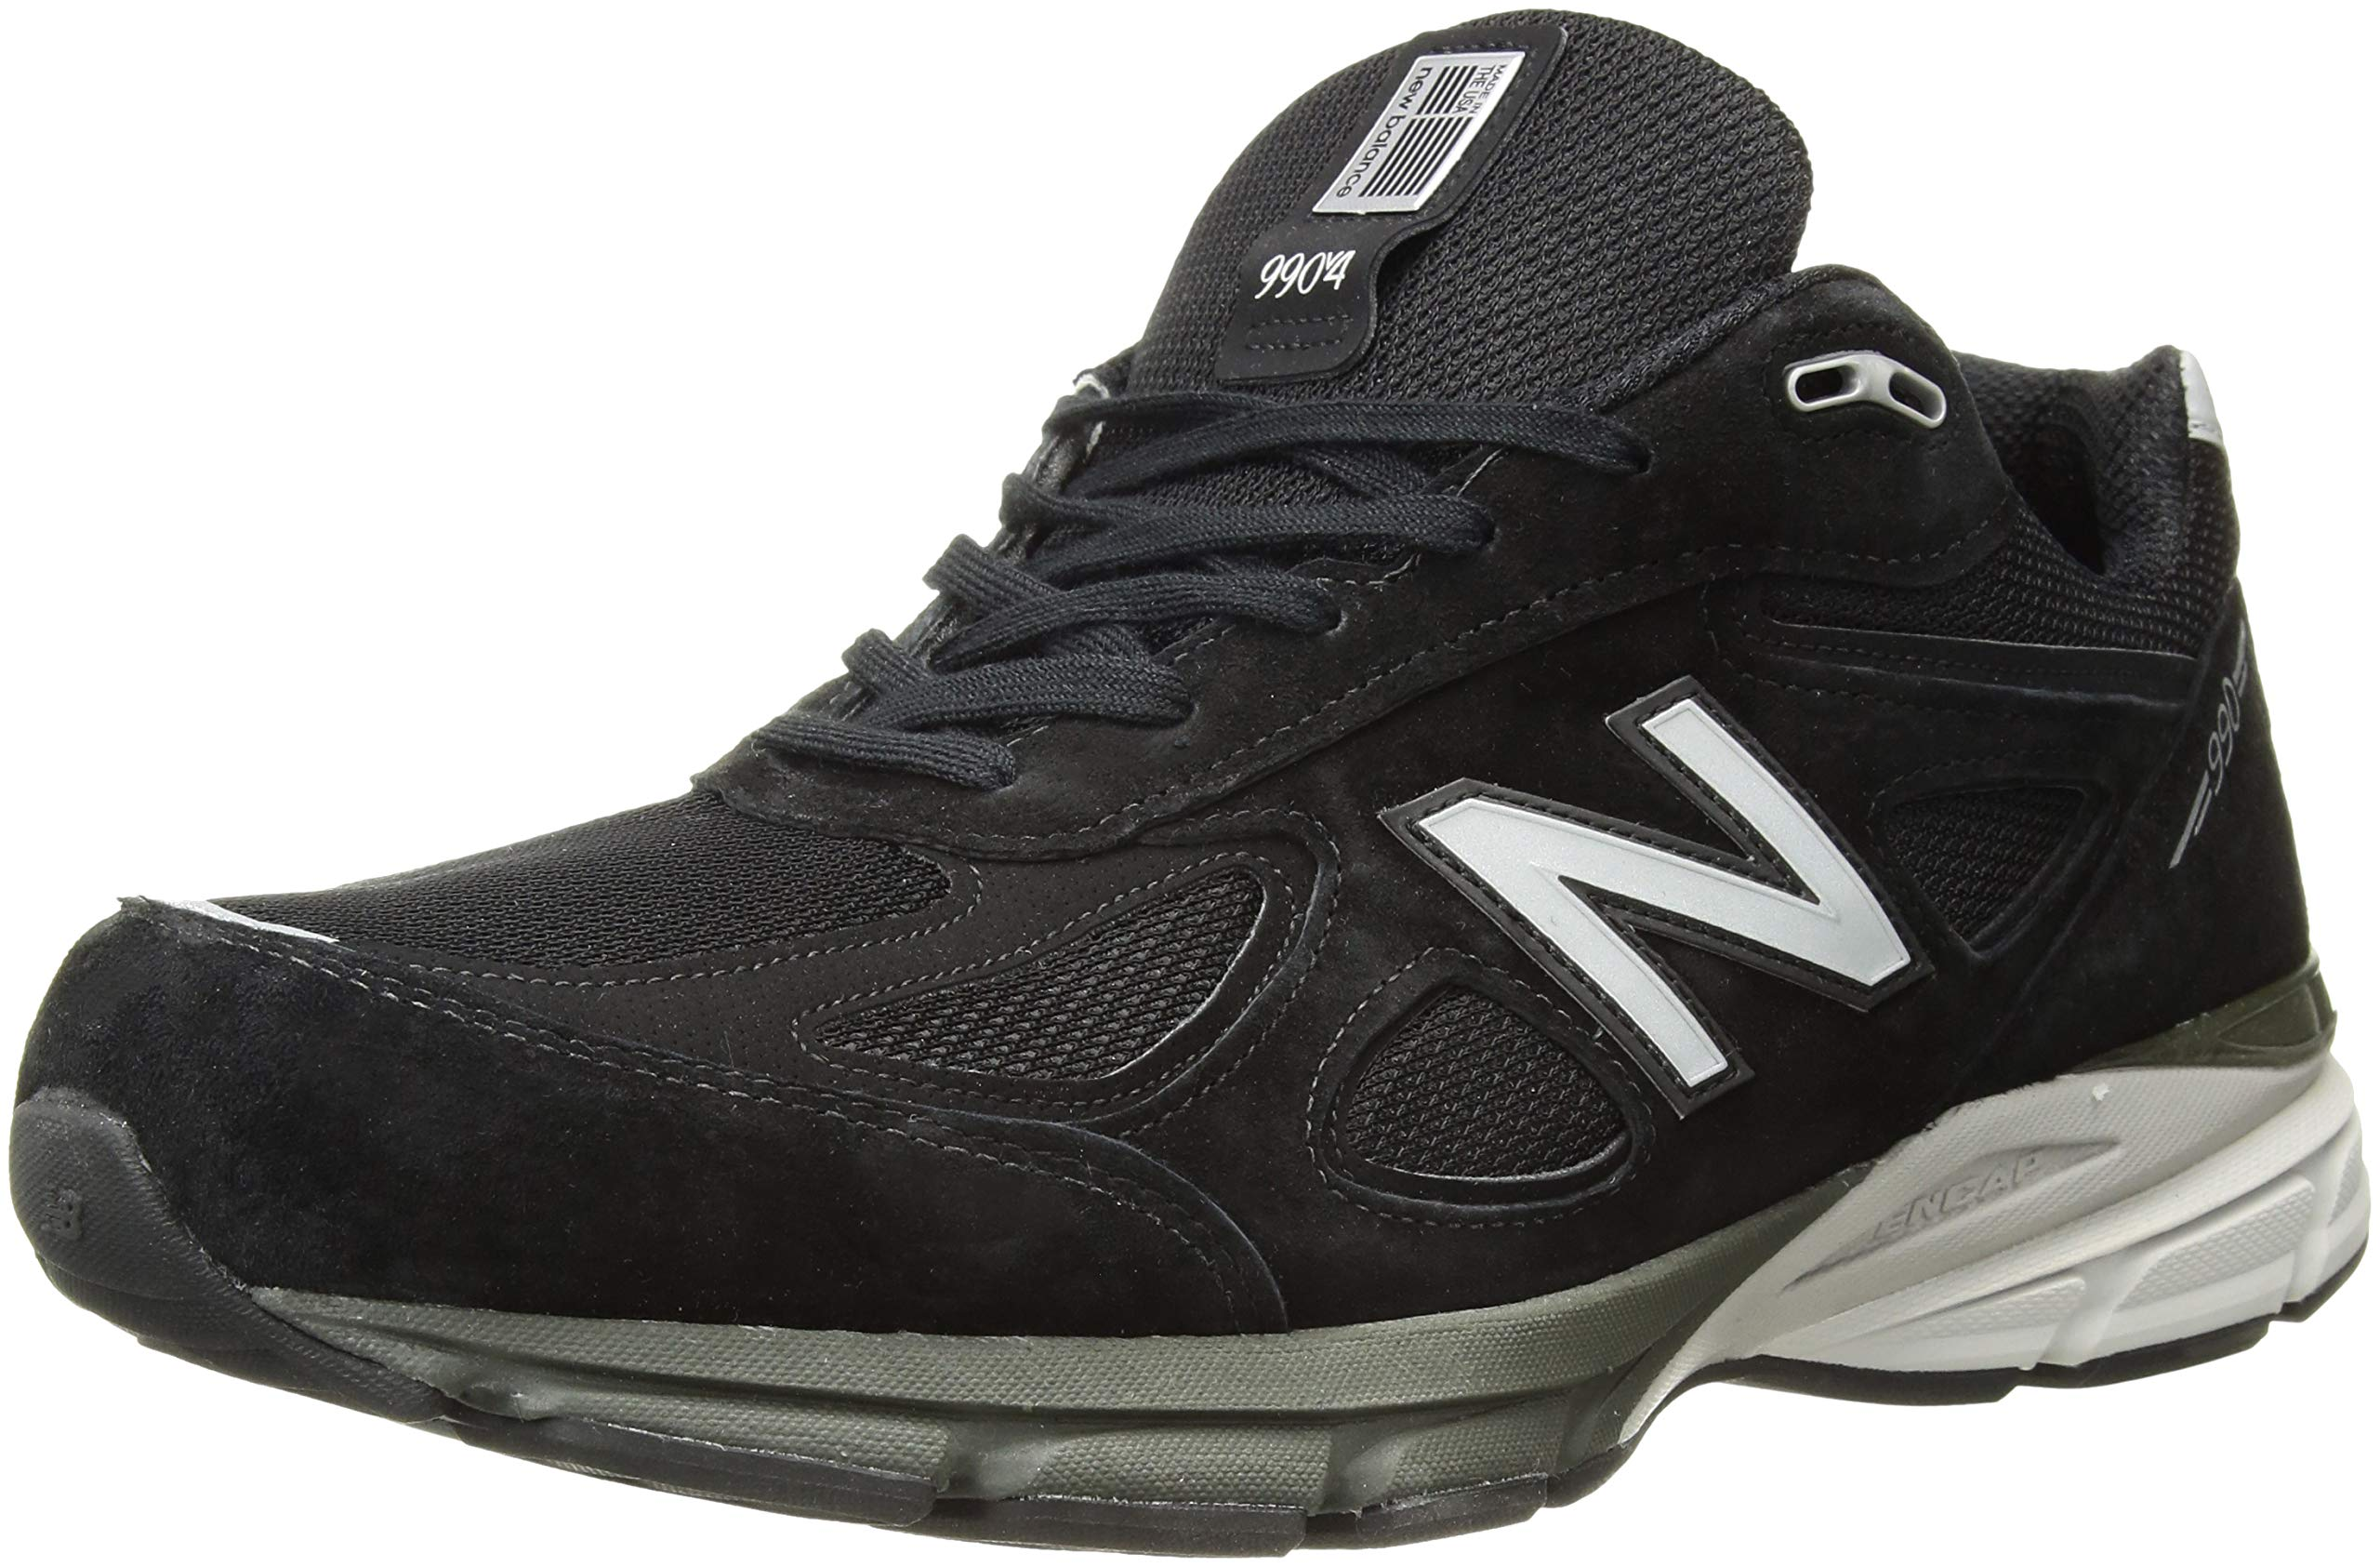 New Balance Men's M990BK4 Running Shoe, Black/Silver, 9 2A US by New Balance